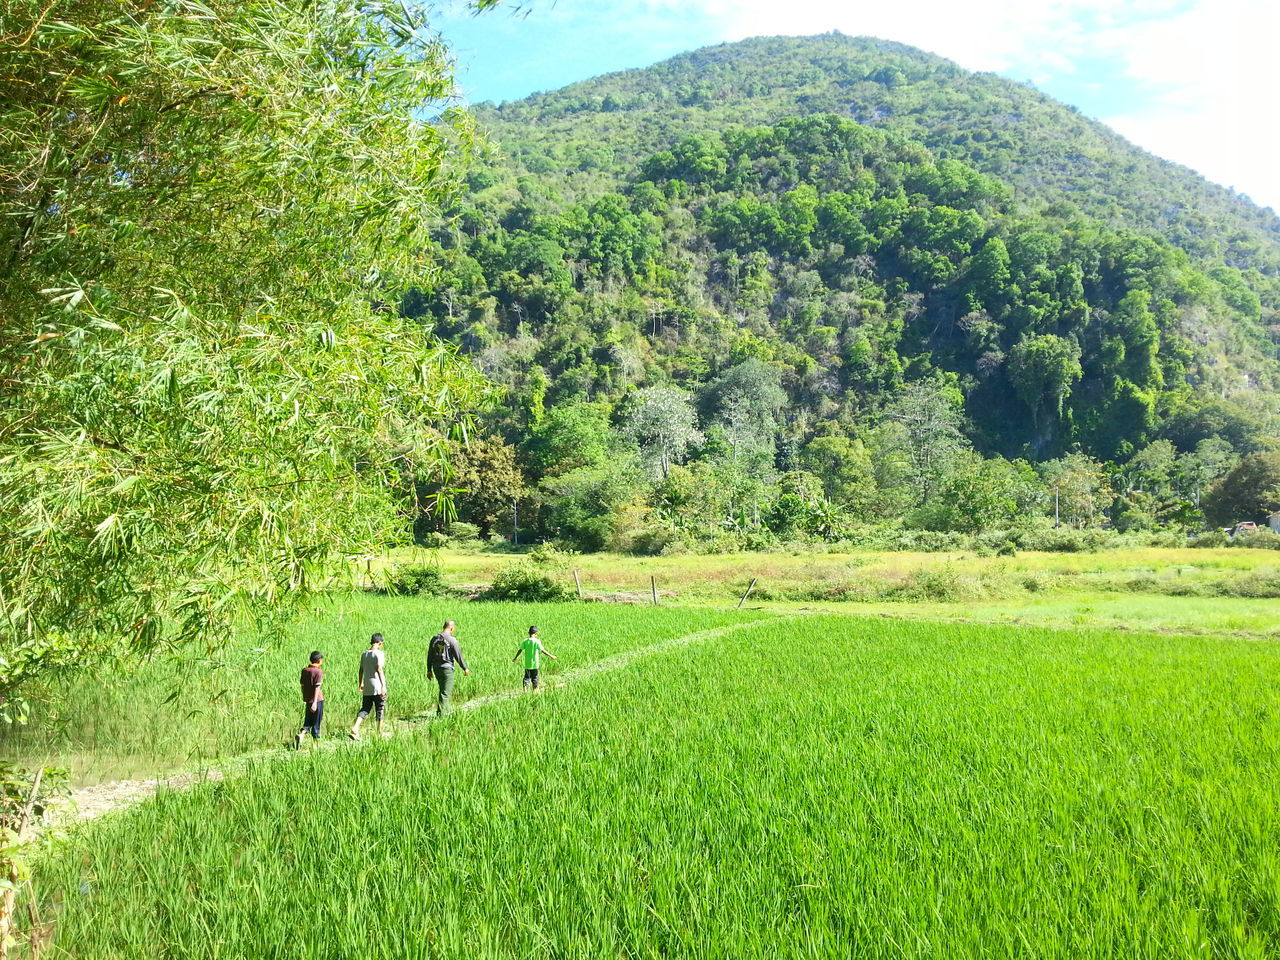 growth, field, green color, grass, nature, real people, agriculture, day, mountain, landscape, men, scenics, beauty in nature, outdoors, women, tree, togetherness, sky, people